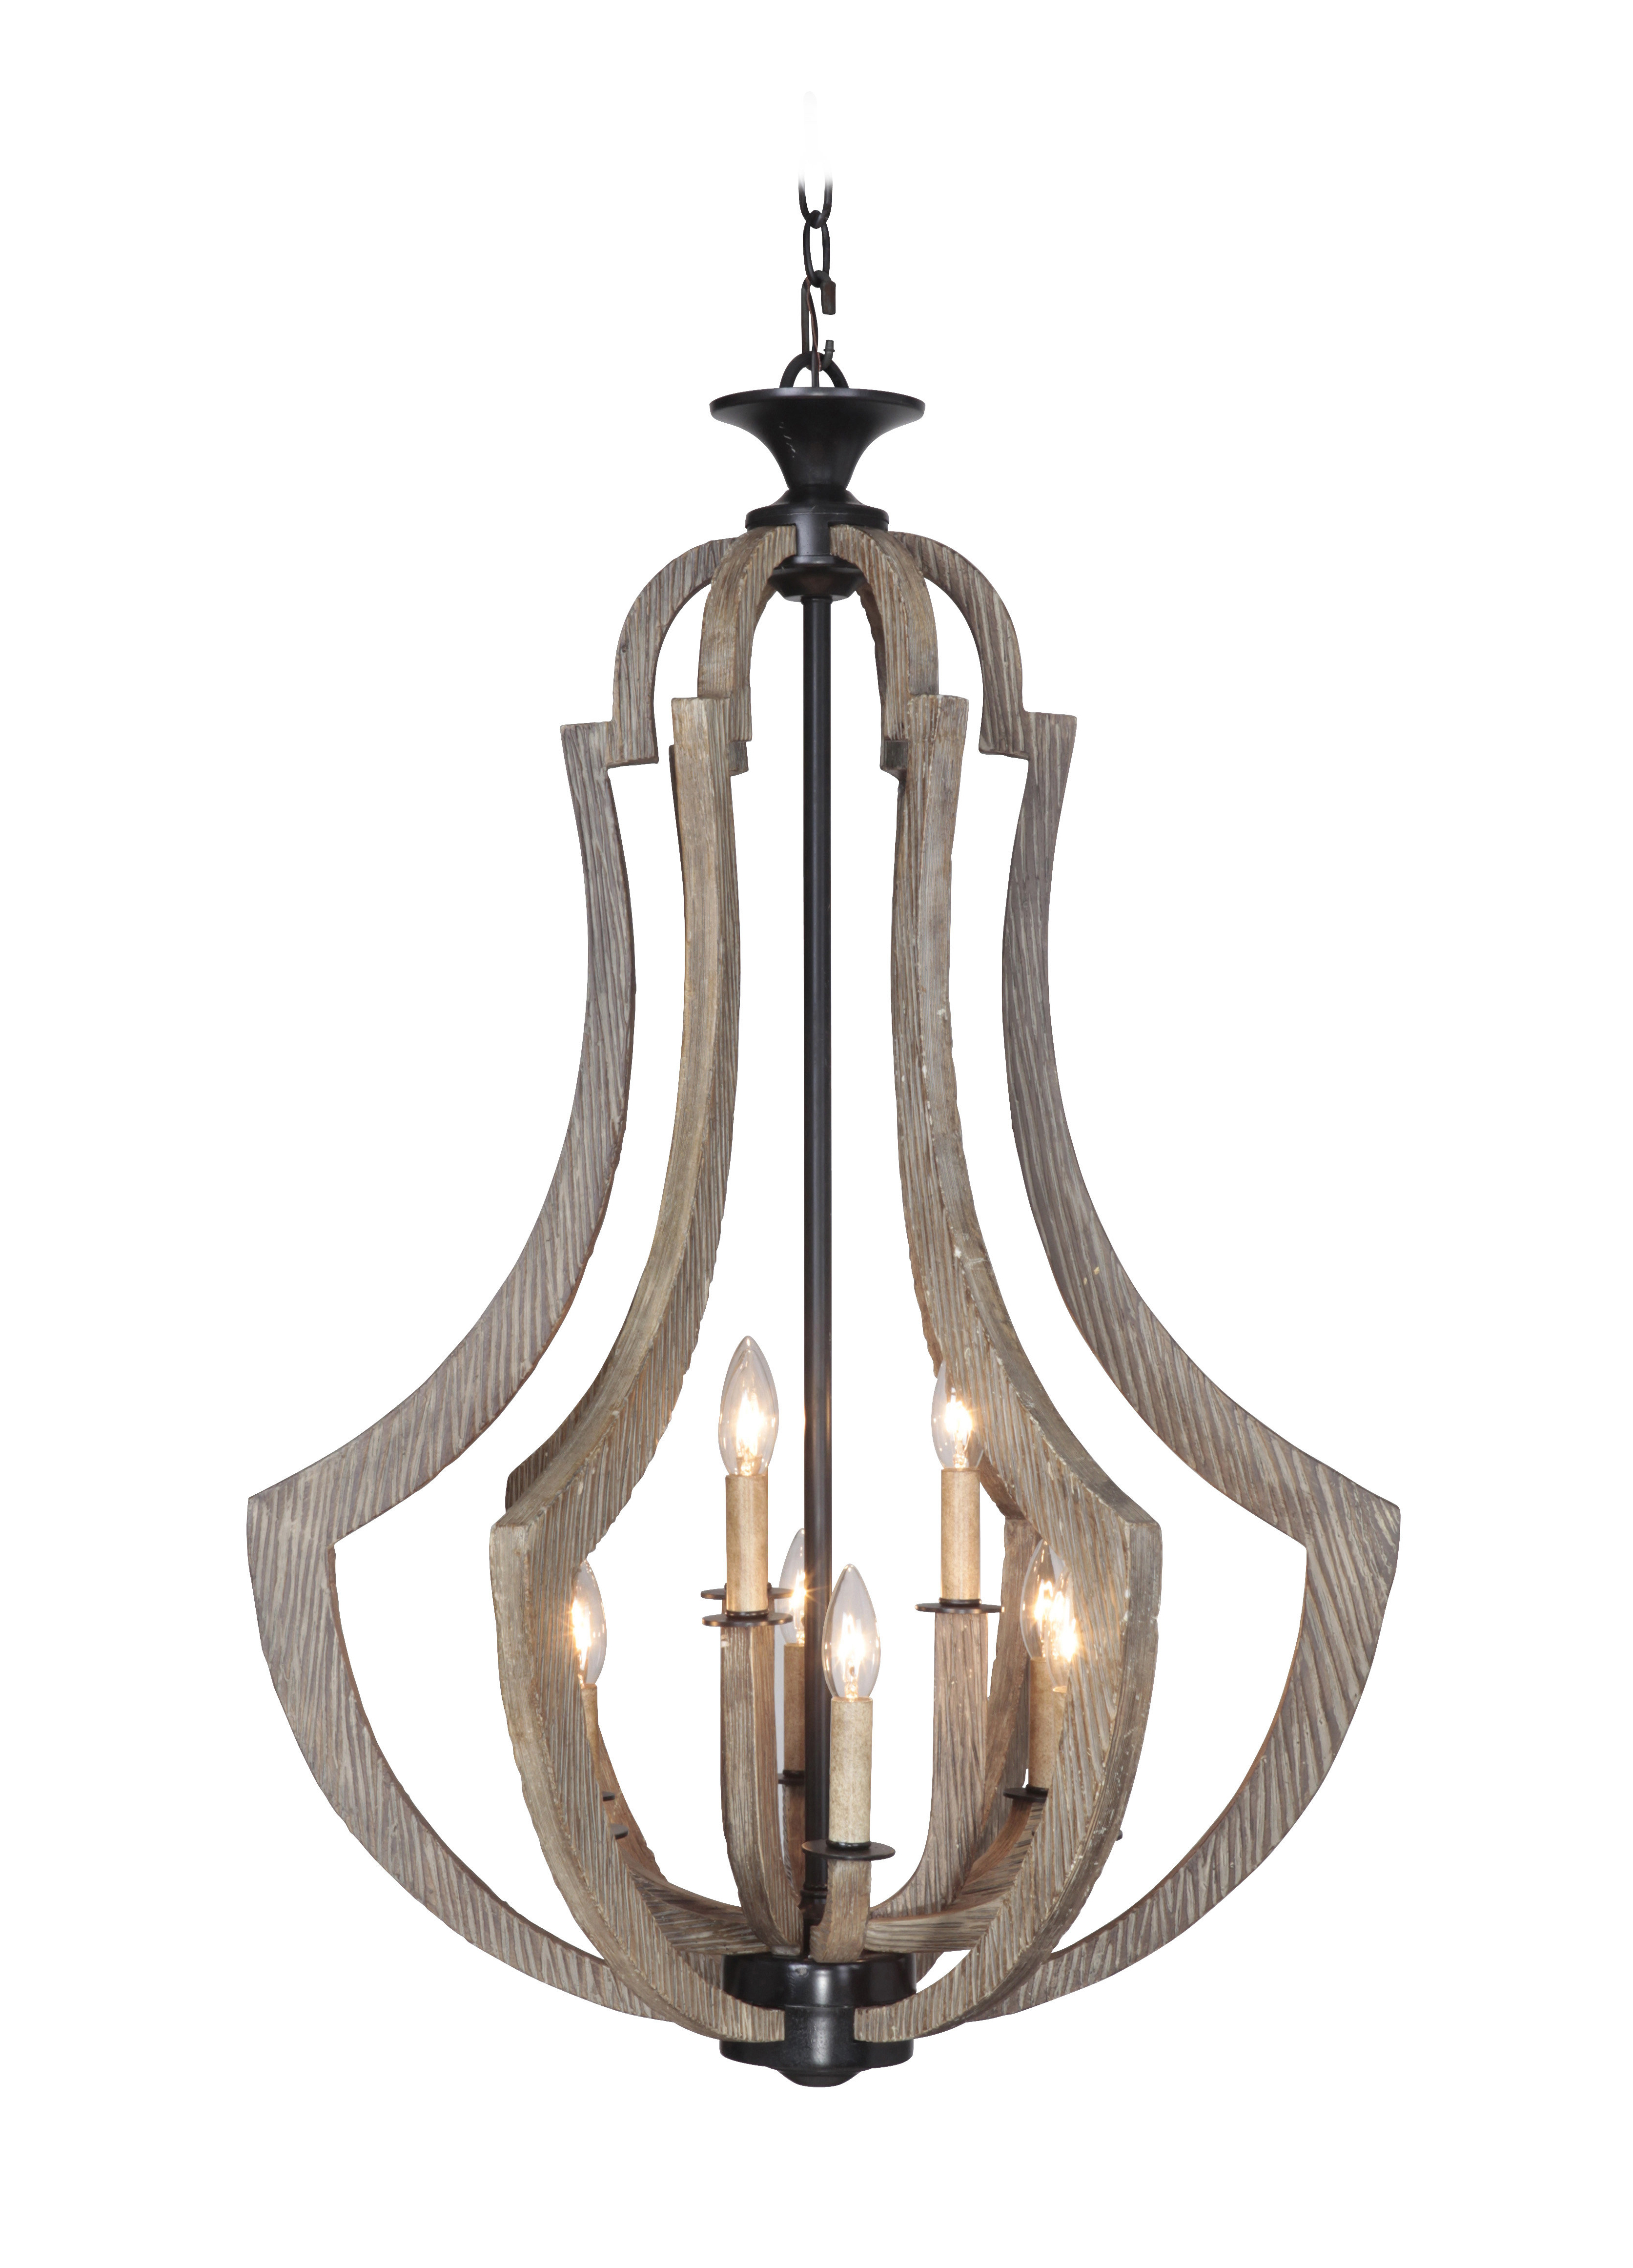 Kenna 5 Light Empire Chandeliers For Latest Radtke 9 Light Empire Chandelier (View 20 of 25)